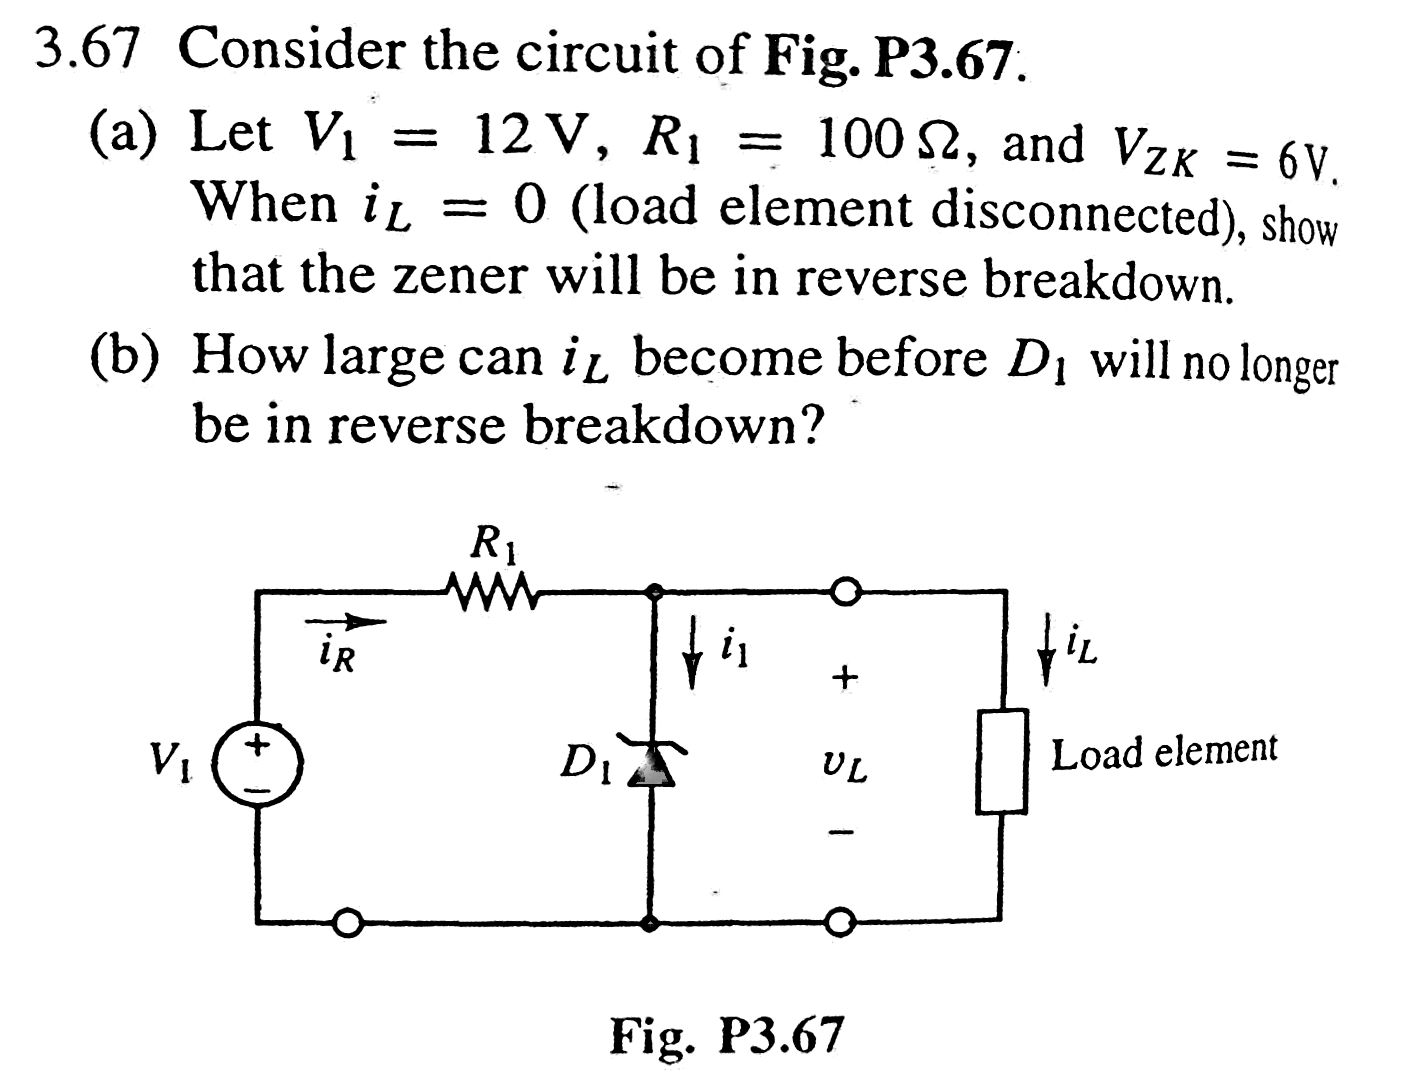 Consider the circuit of Fig. P3.67. Let V1 = 12 V